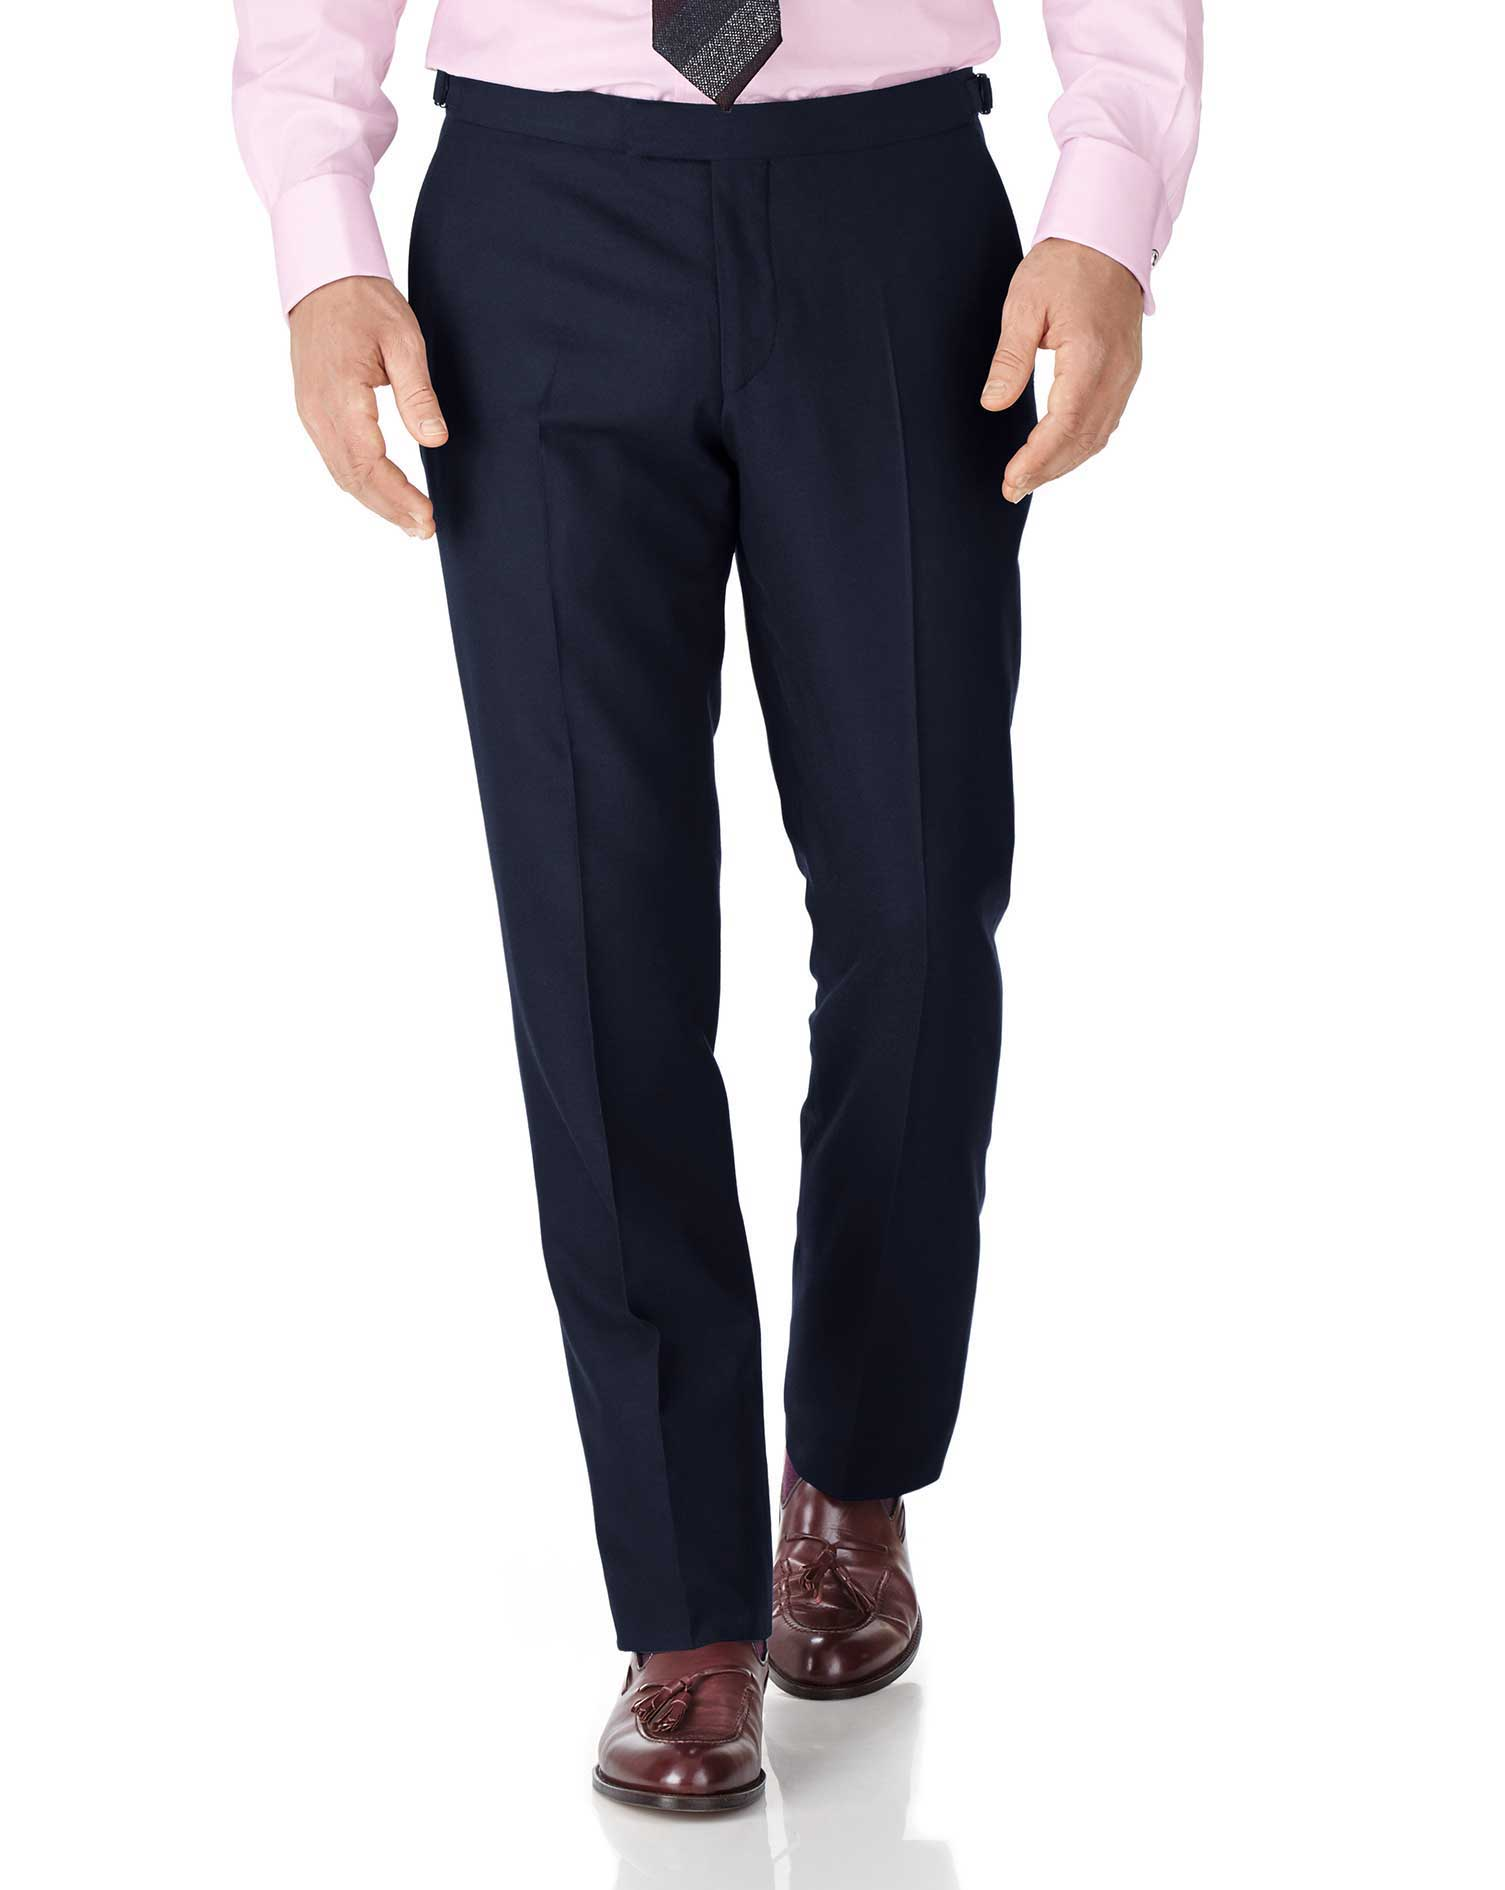 Navy Classic Fit British Serge Luxury Suit Trousers Size W34 L32 by Charles Tyrwhitt